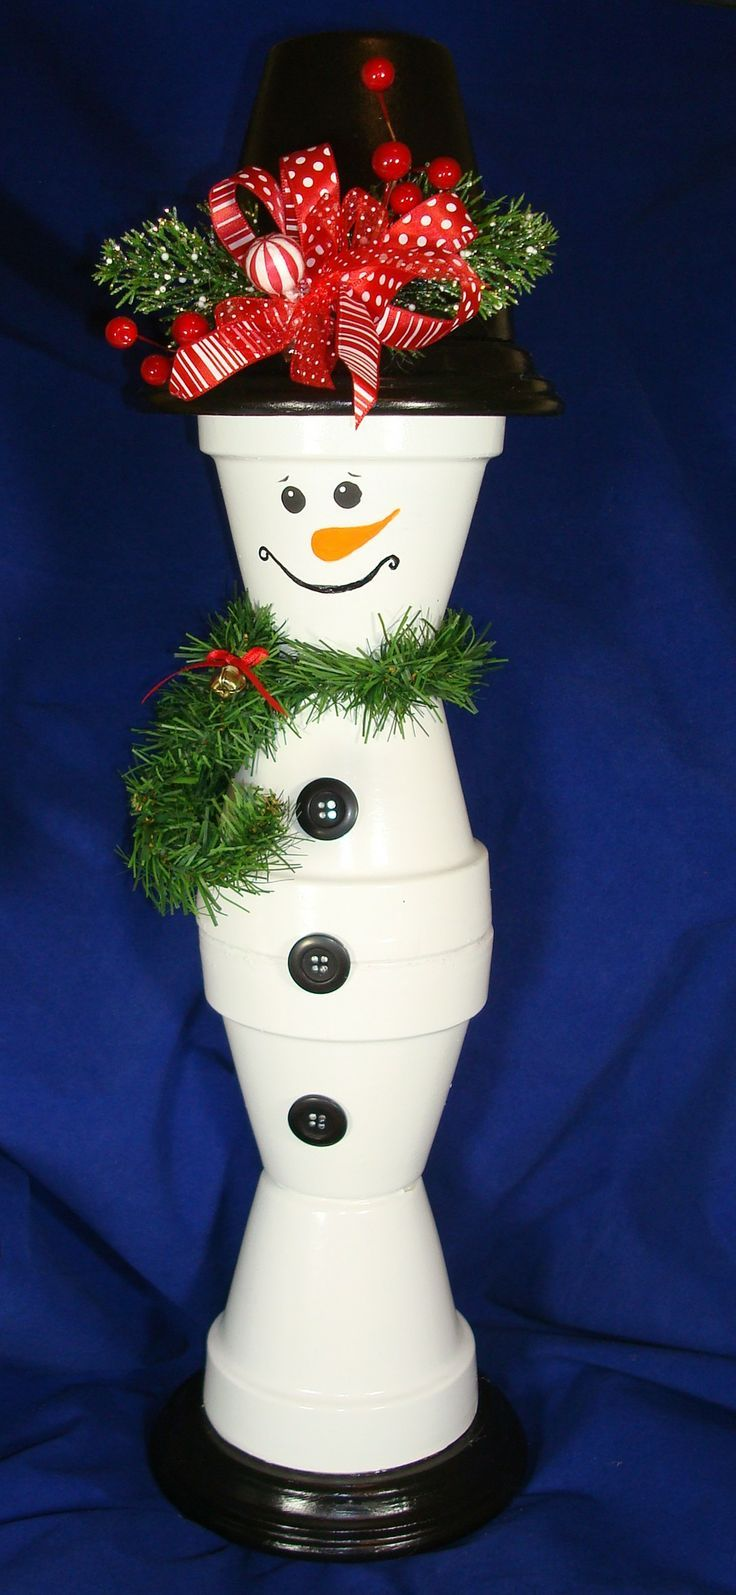 Adorable flower pot snowman.